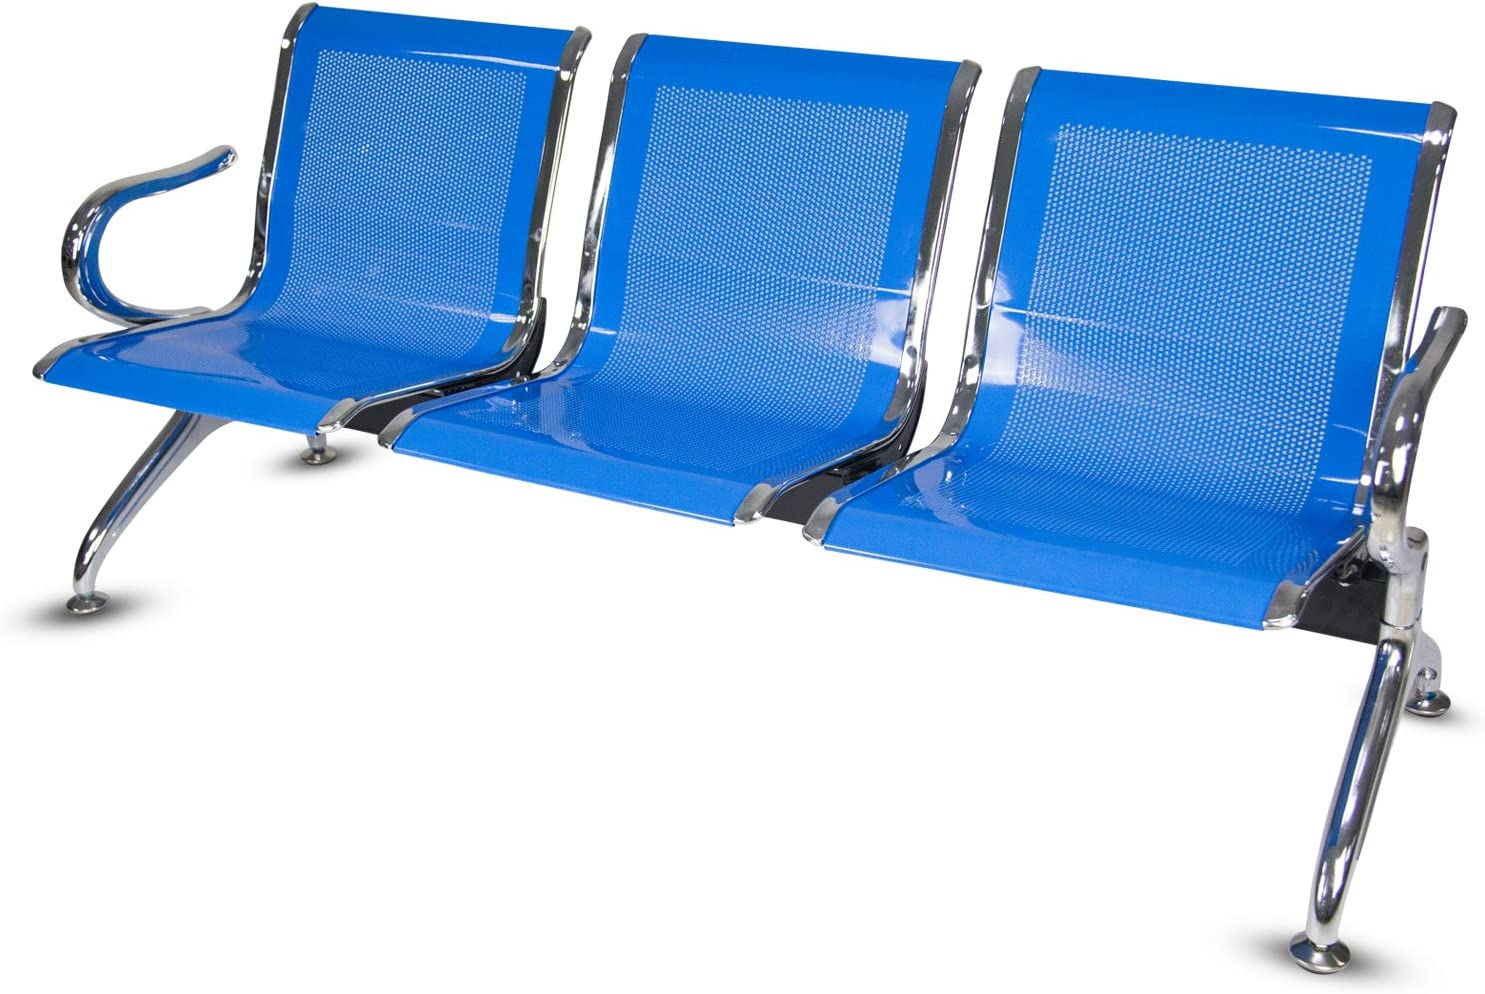 Peach Tree Airport Reception Waiting Room Chair Lobby Waiting Bench 3 Seat Bench Furniture Blue